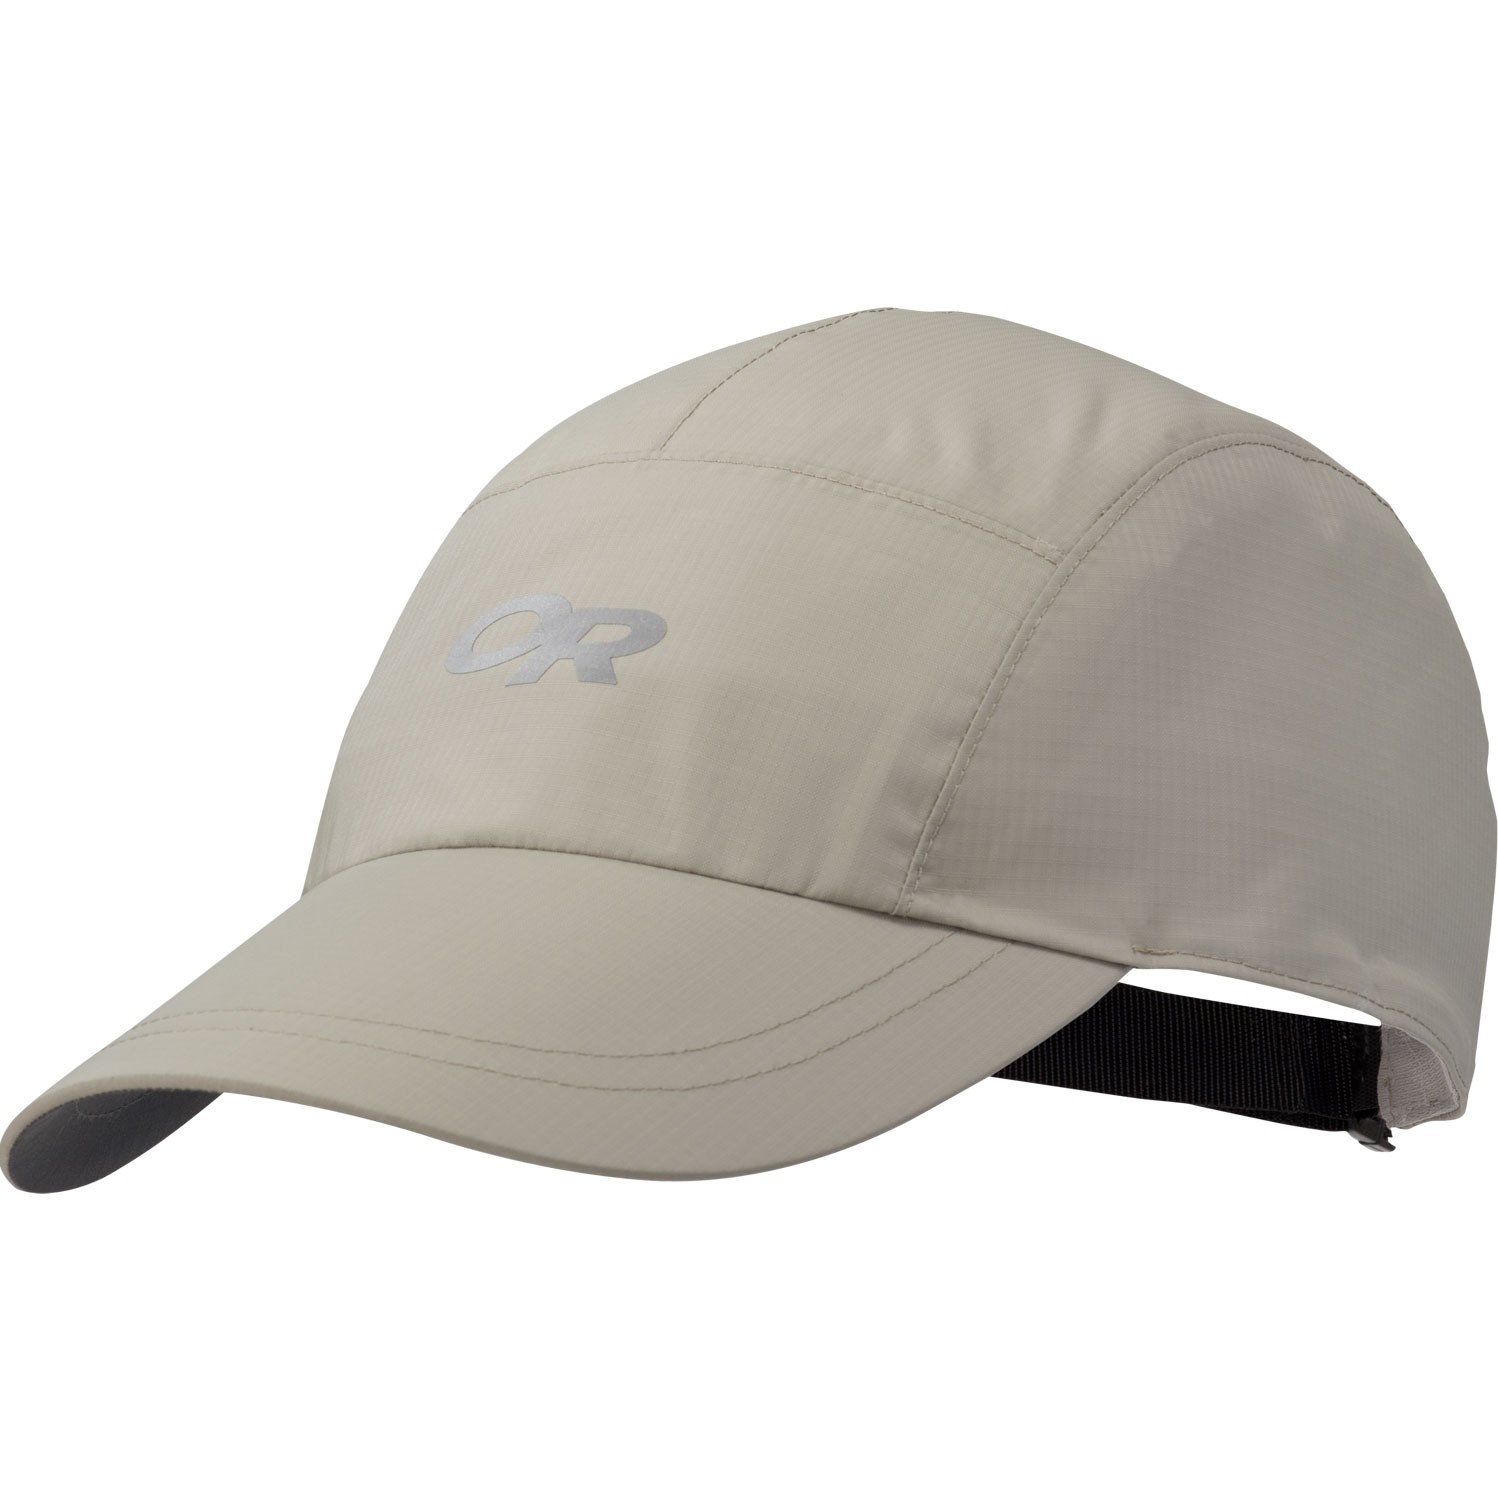 Outdoor Research Halo Rain Cap - Khaki